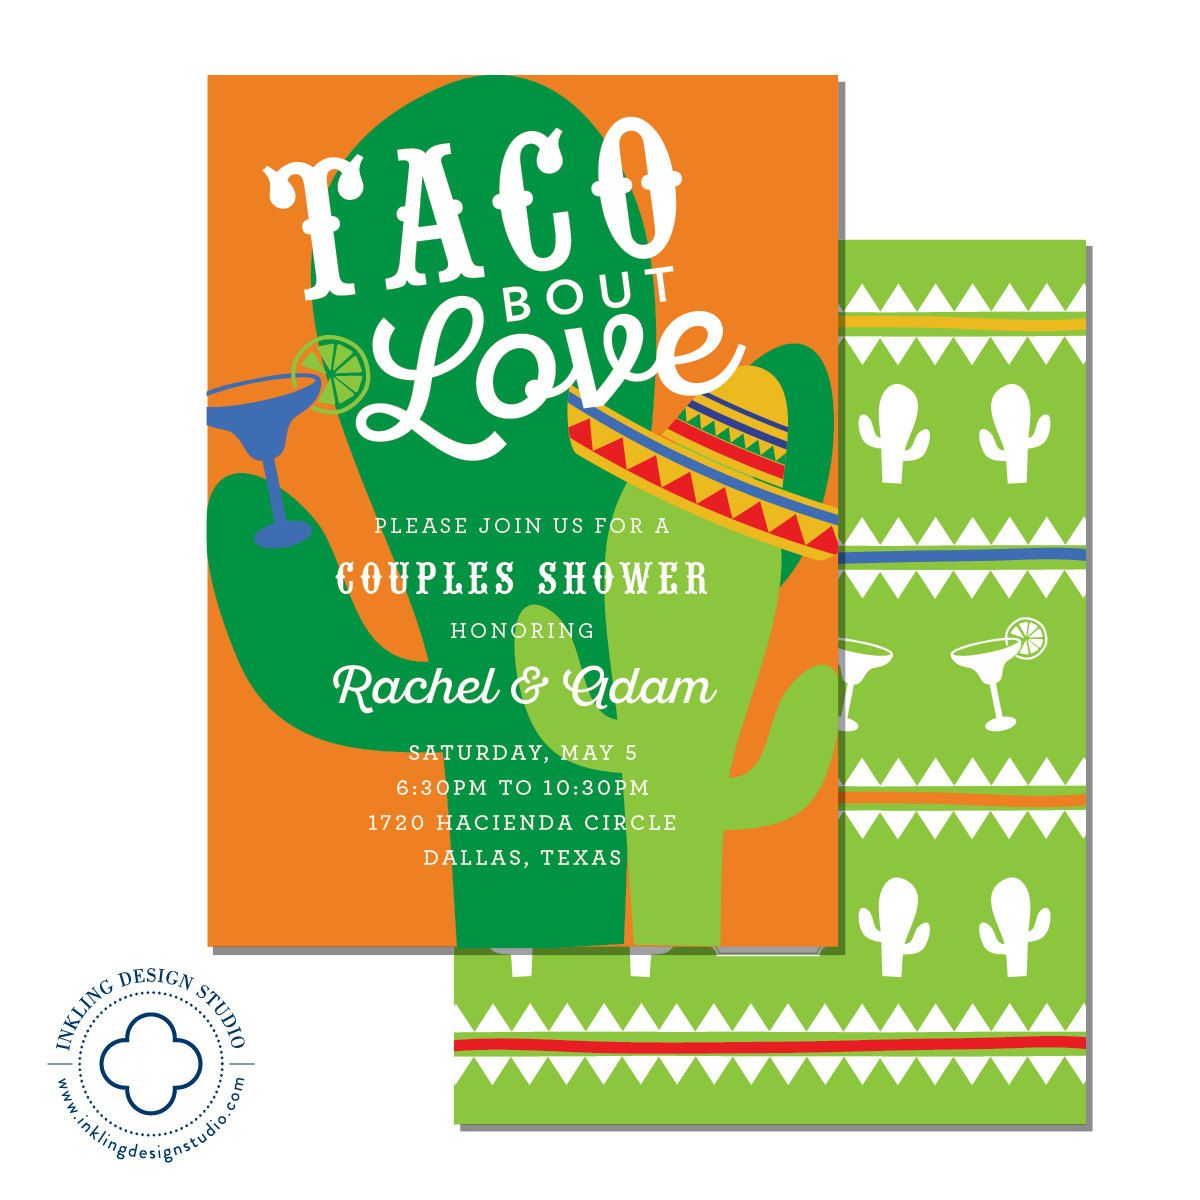 Taco Bout Love Invitation | Wedding Party, Engagement Party, Couples ...